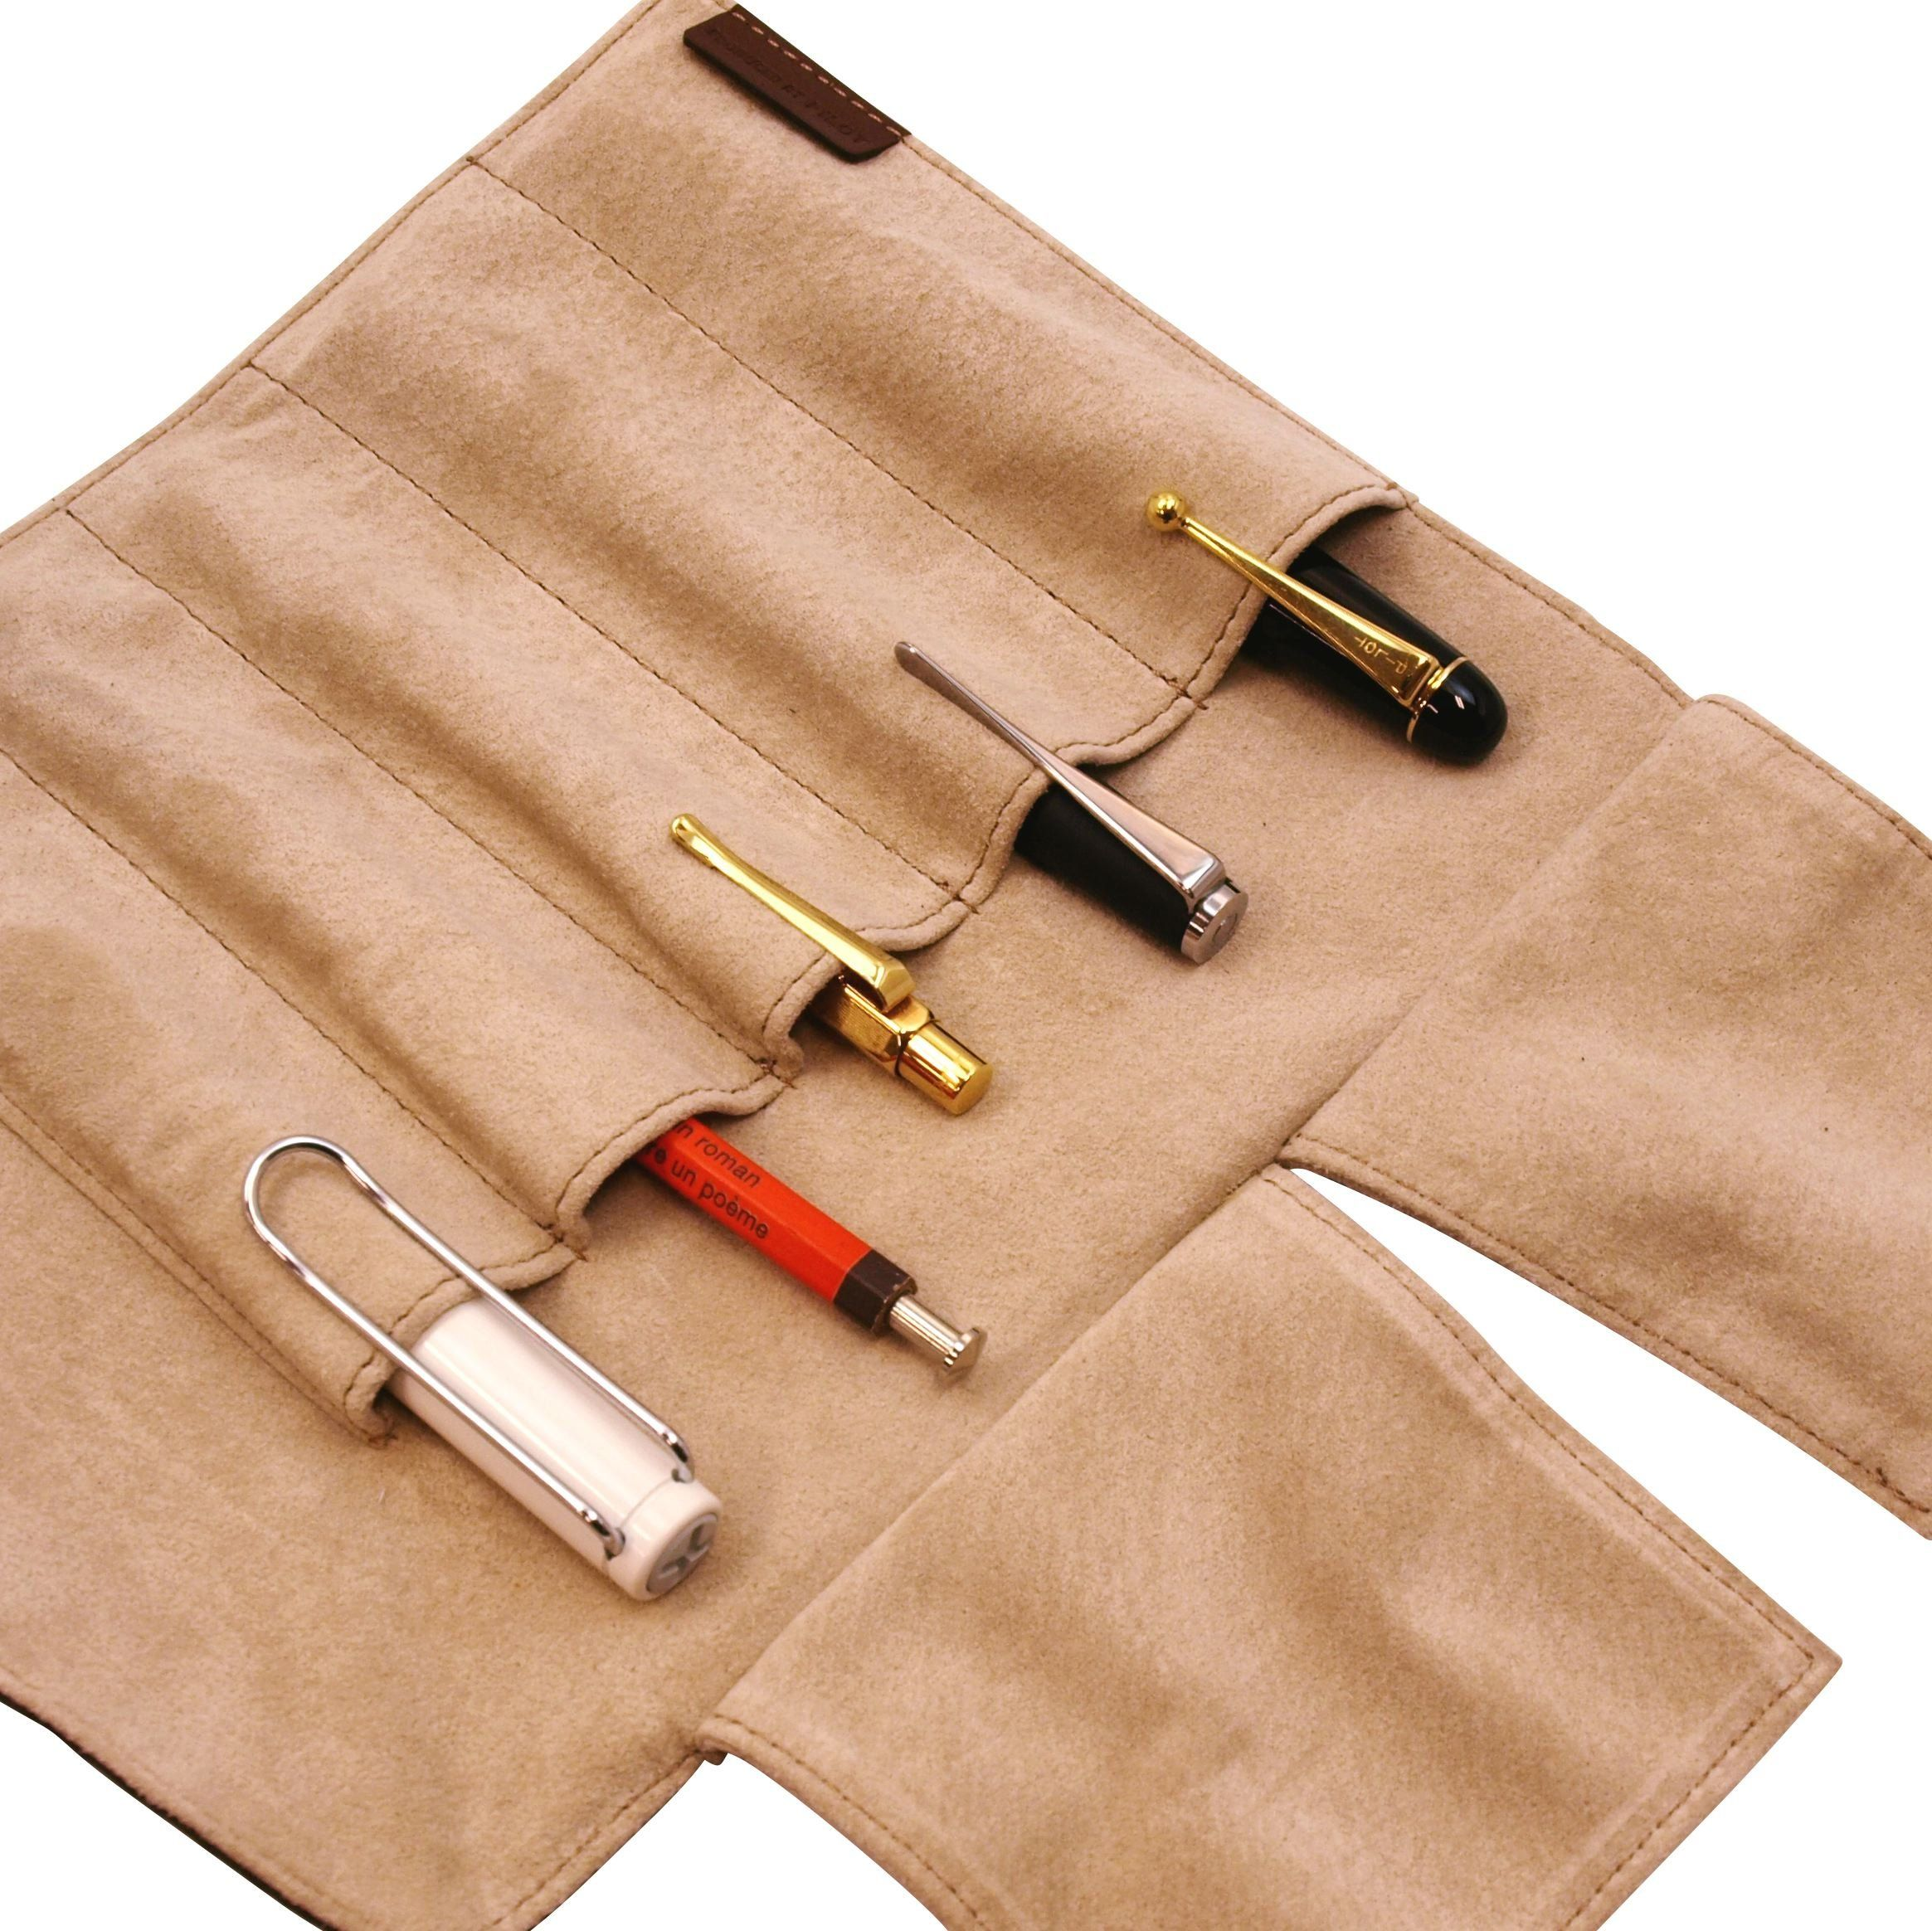 Amazon.com : Pilot Pensemble Roll Pen Case 5 Pocket Cowhide Dark Brown : Pen And Pencil Cases : Office Products